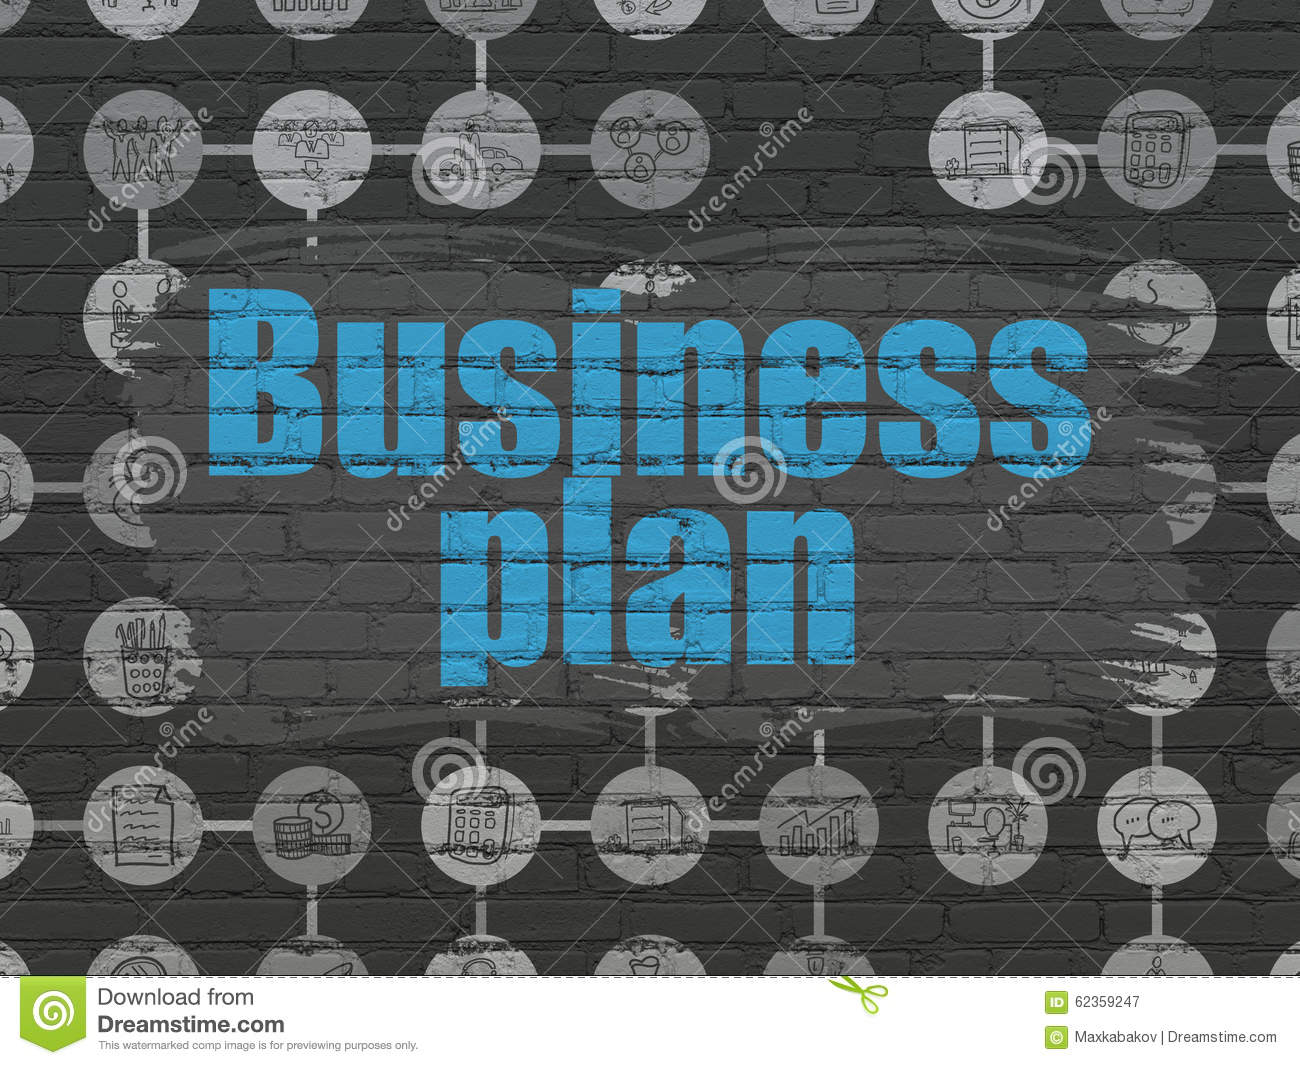 Painting business plan